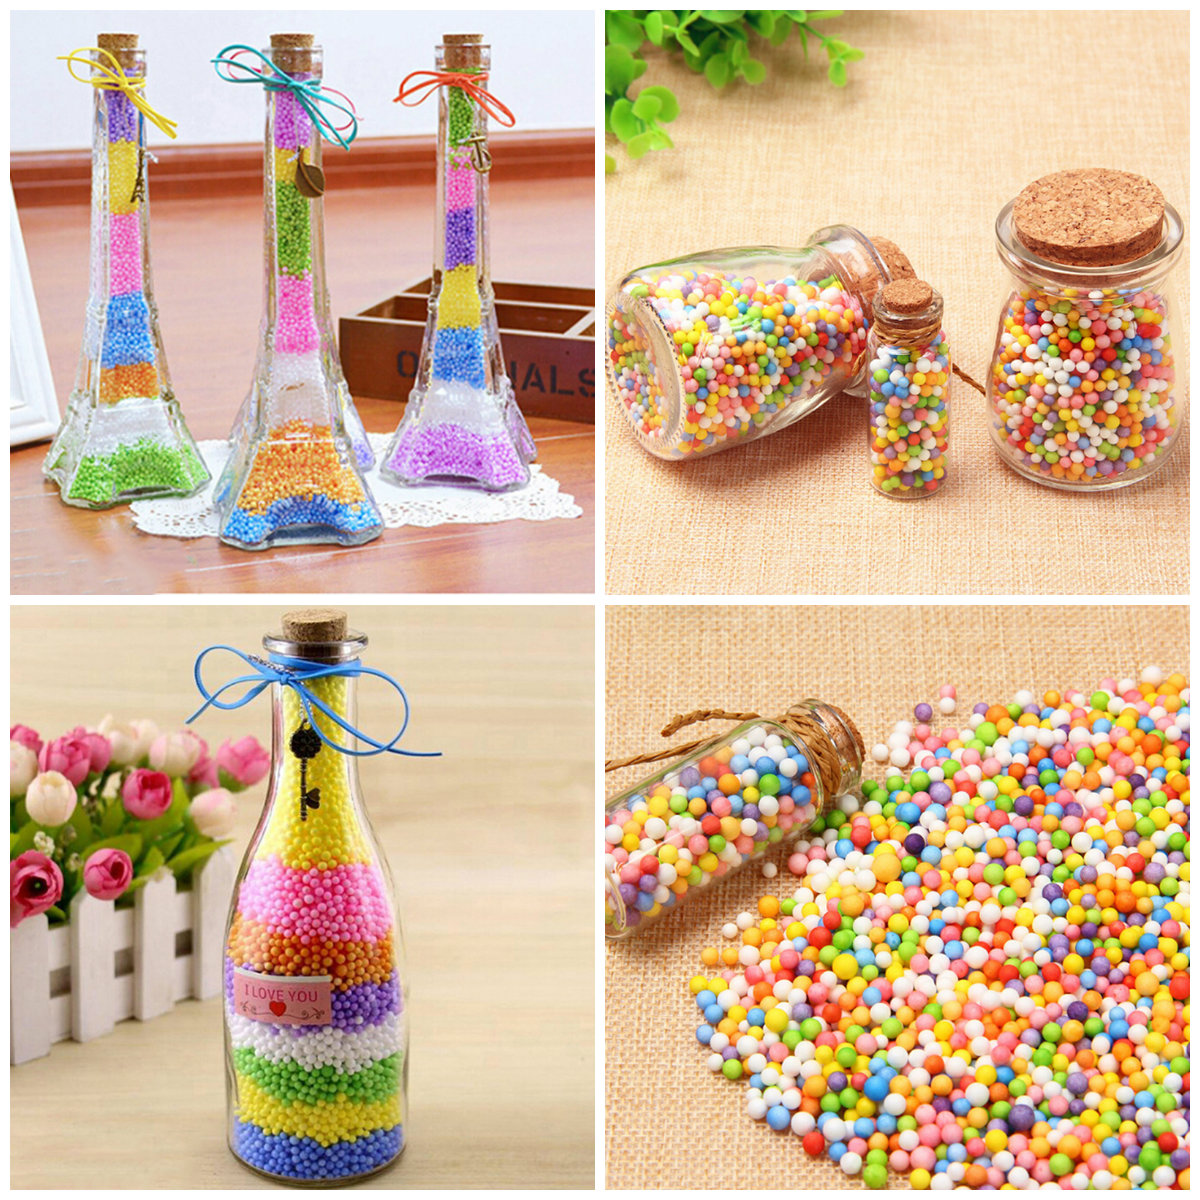 Modeling Clay Realistic 6000pcs/pack Small Tiny Foam Beads For Floam Filler For Diy Supplies 2.5-3.5mm Diy Snow Mud Particles Accessories Slime Balls Modern And Elegant In Fashion Toys & Hobbies